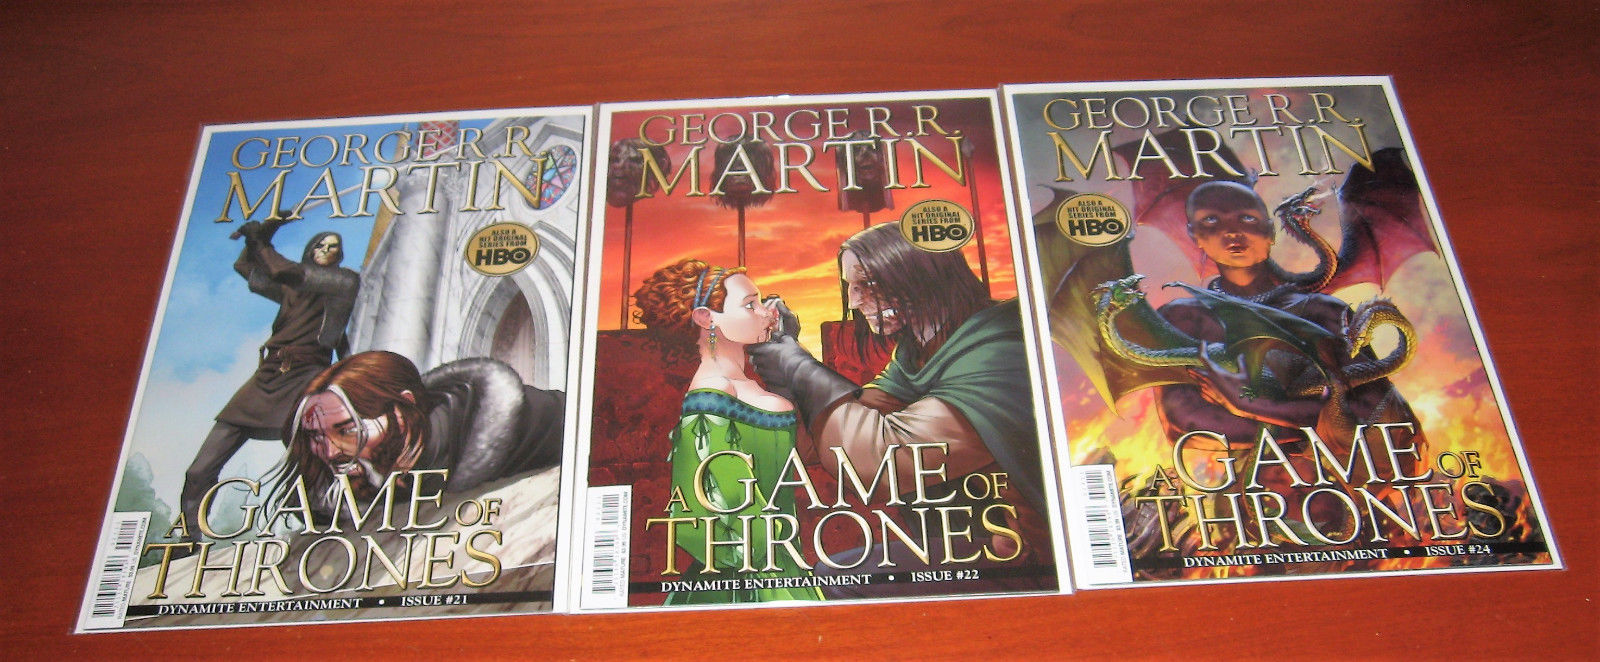 Game of Thrones #21 #22 & #24 High Grade Unread Comic Books First Printings!